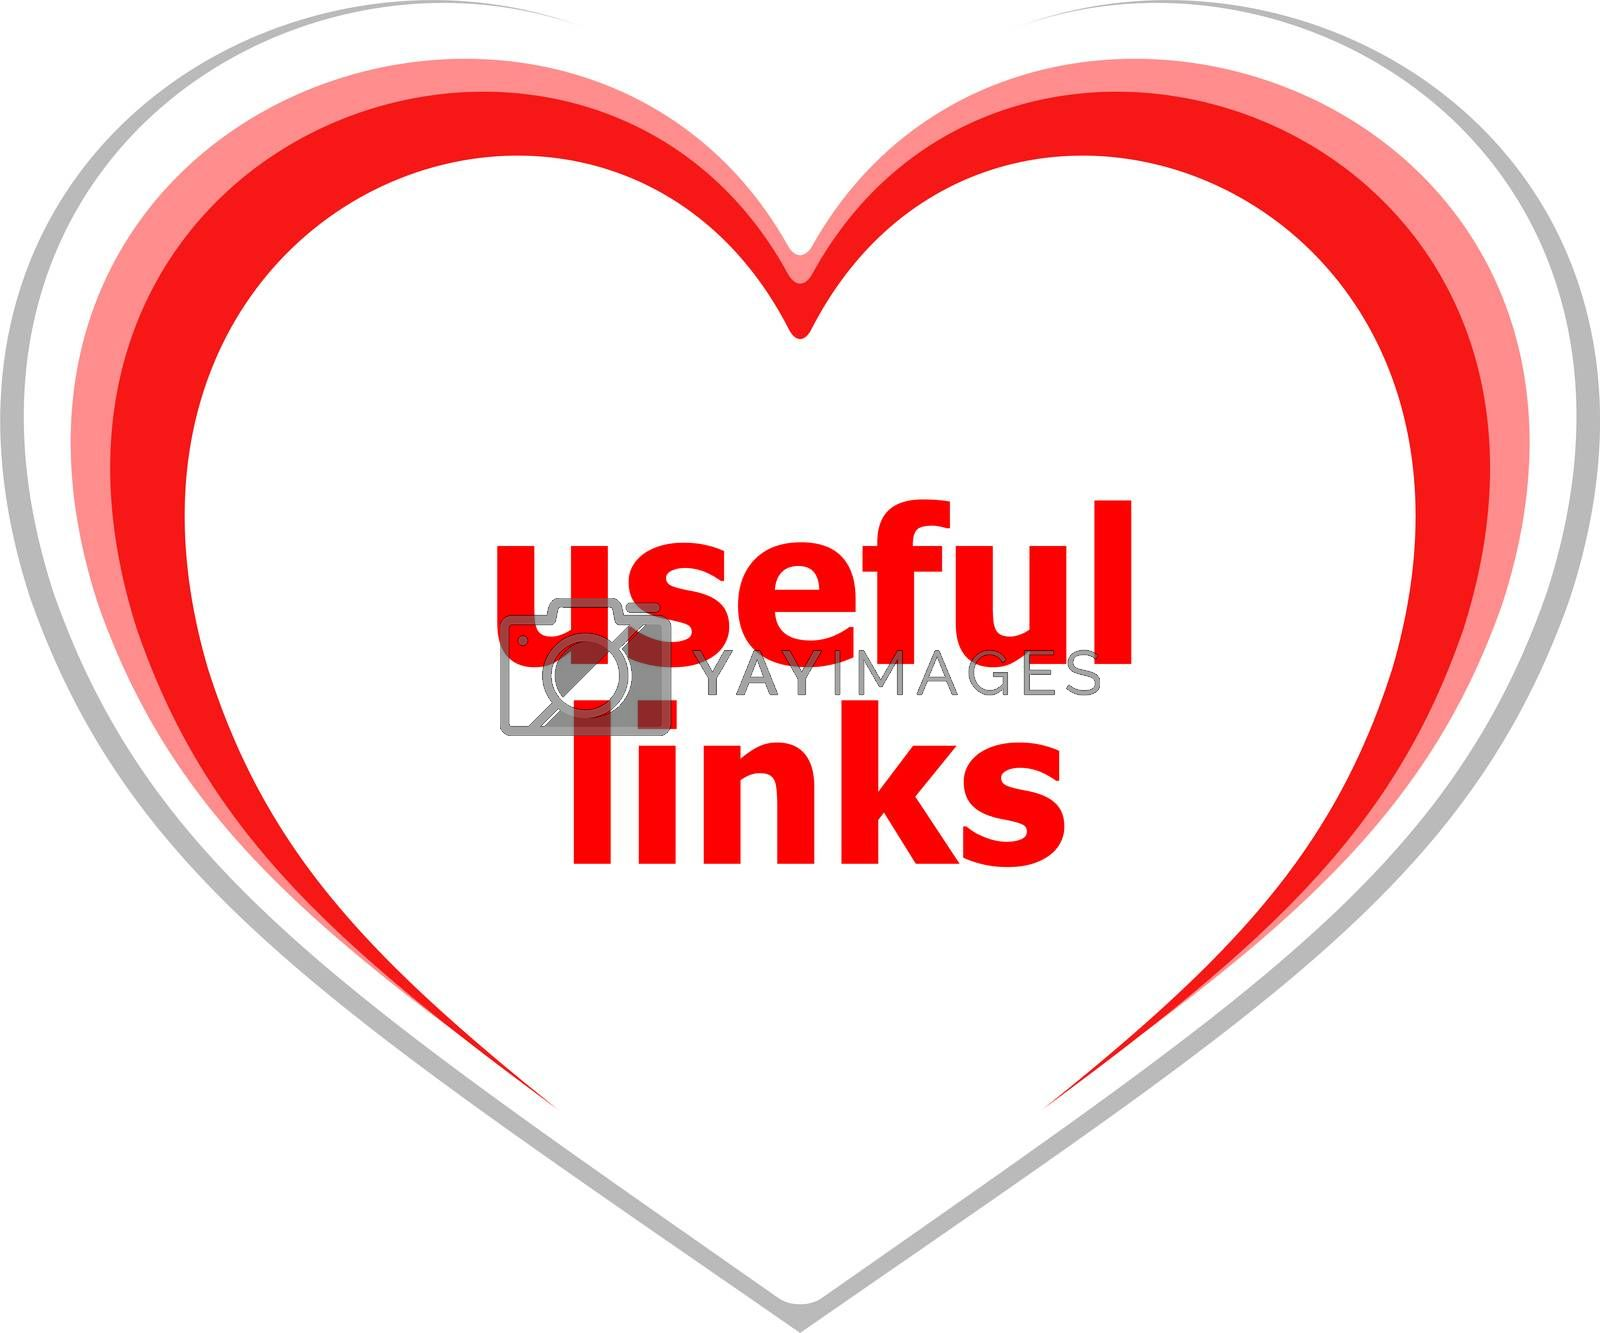 Text useful links. Information concept